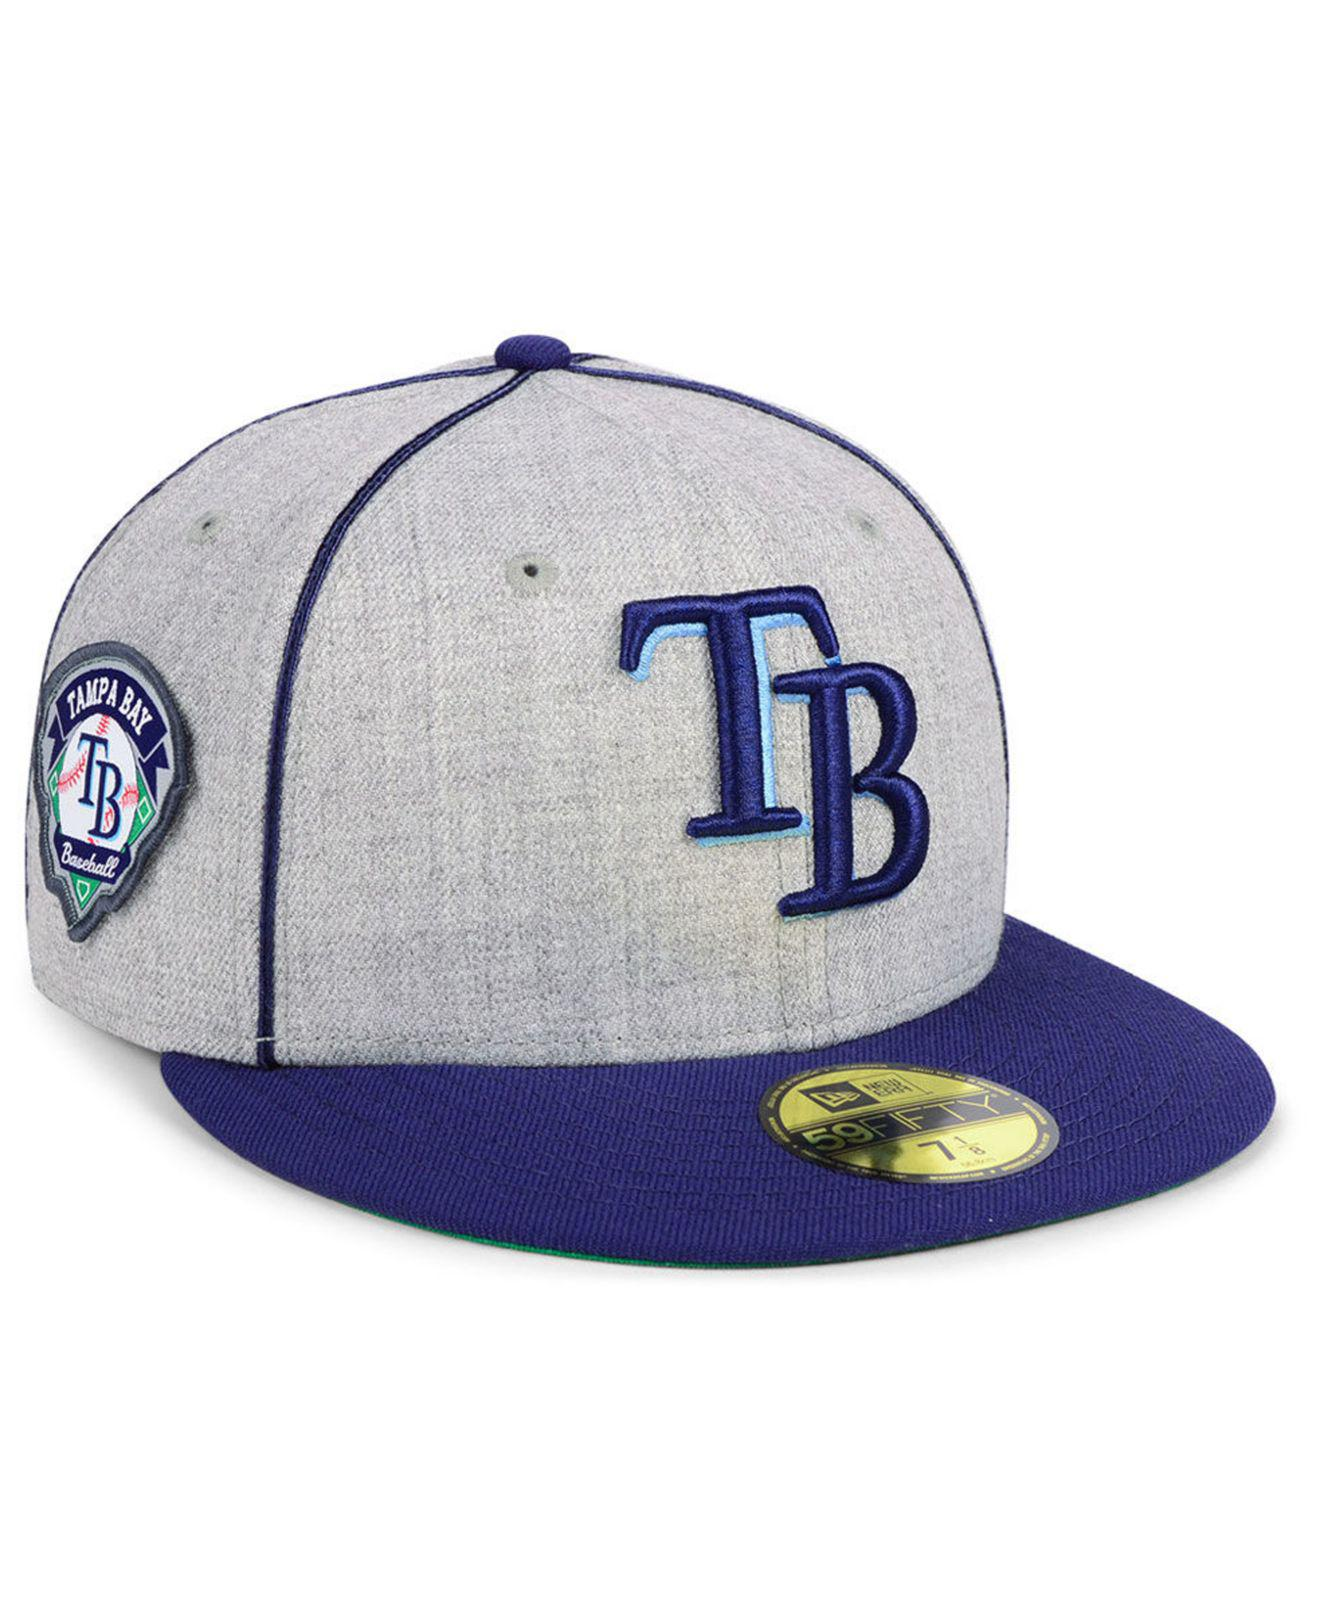 on sale 26783 5ab9e KTZ. Men s Tampa Bay Rays Stache 59fifty Fitted Cap